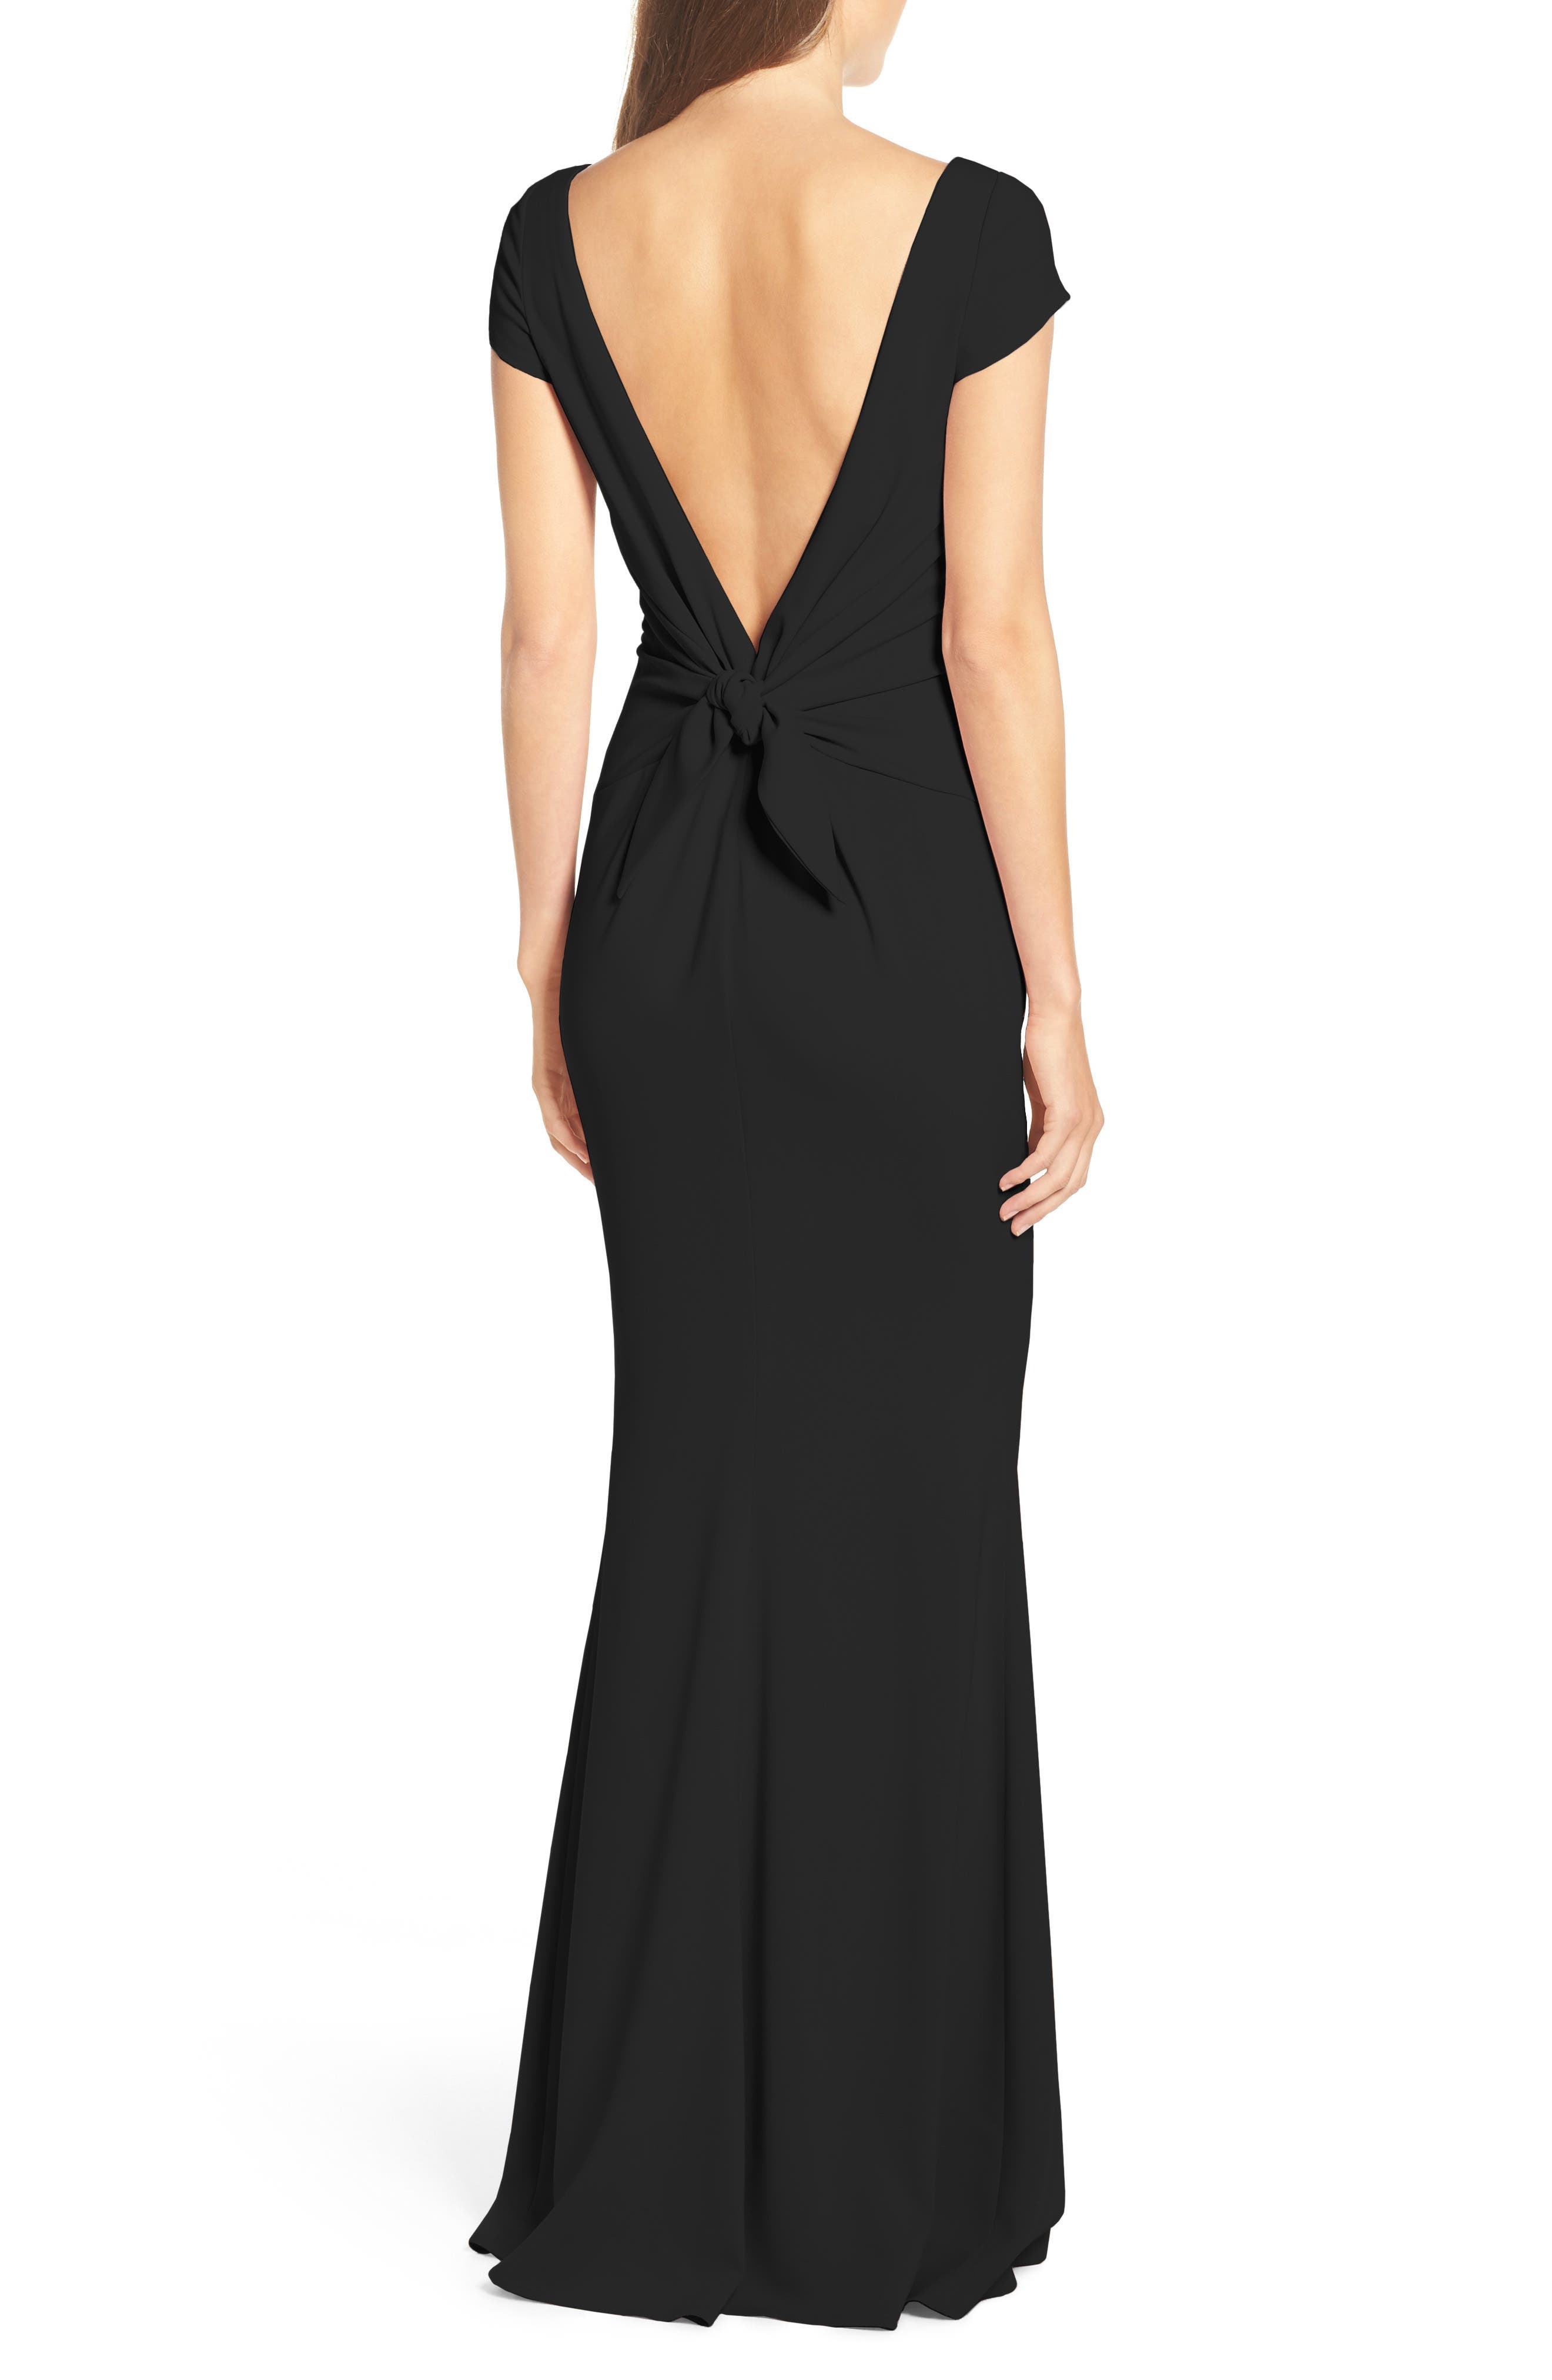 Intrigue Plunge Knot Back Gown,                             Alternate thumbnail 2, color,                             BLACK